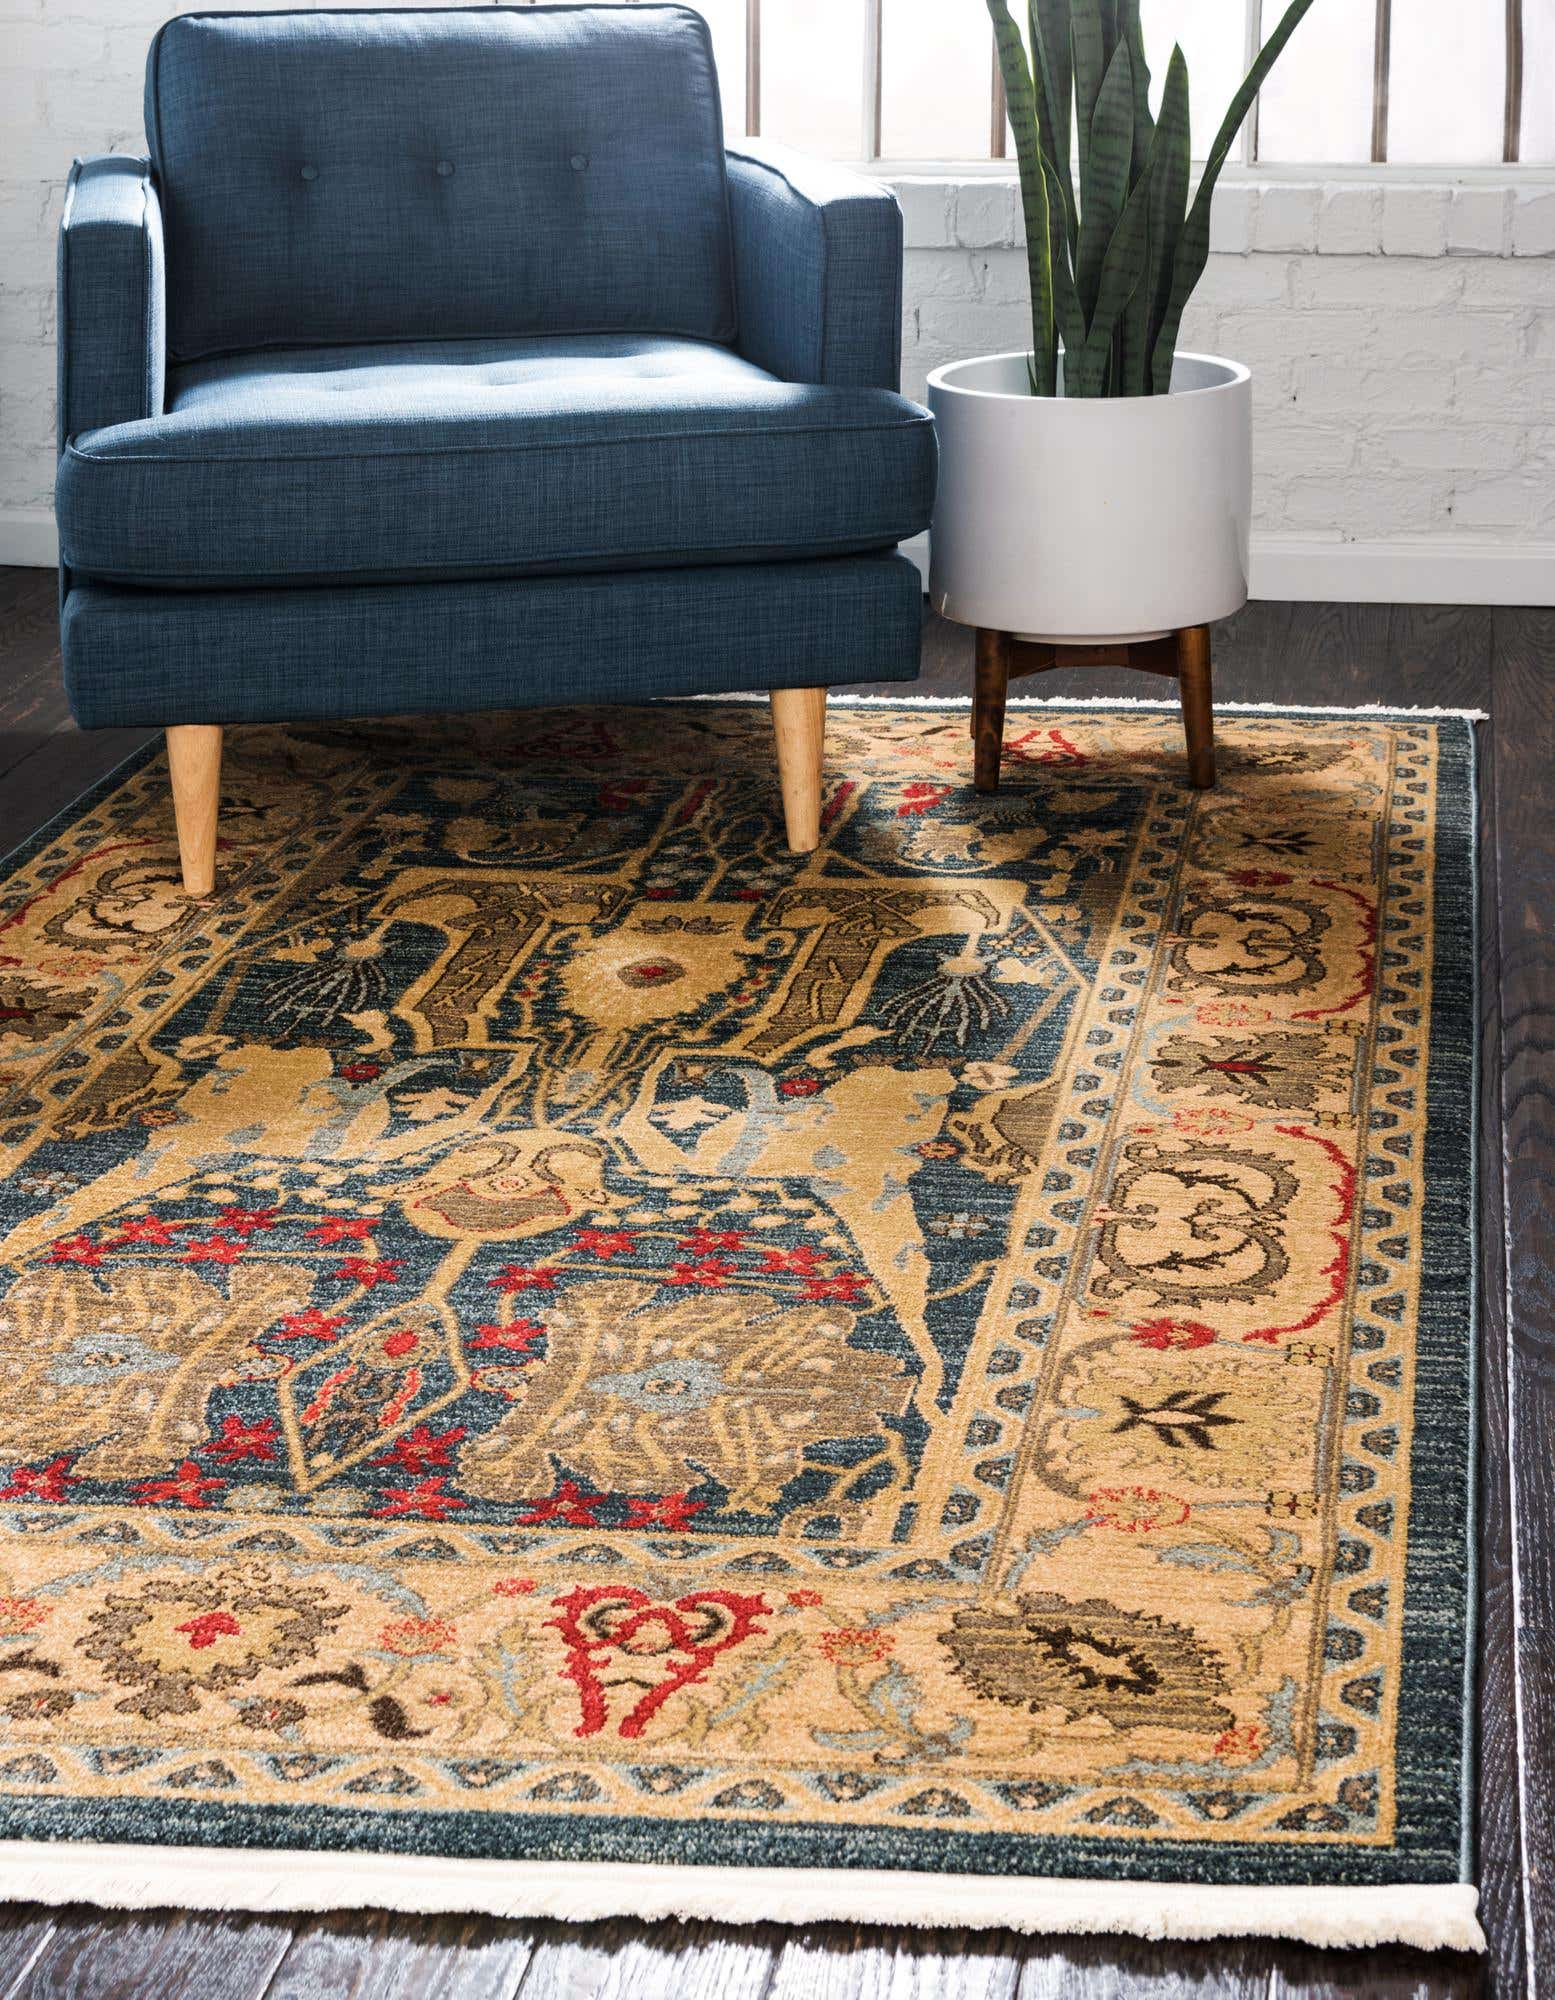 Add a Rug Storyline to your Dark Wood Floors